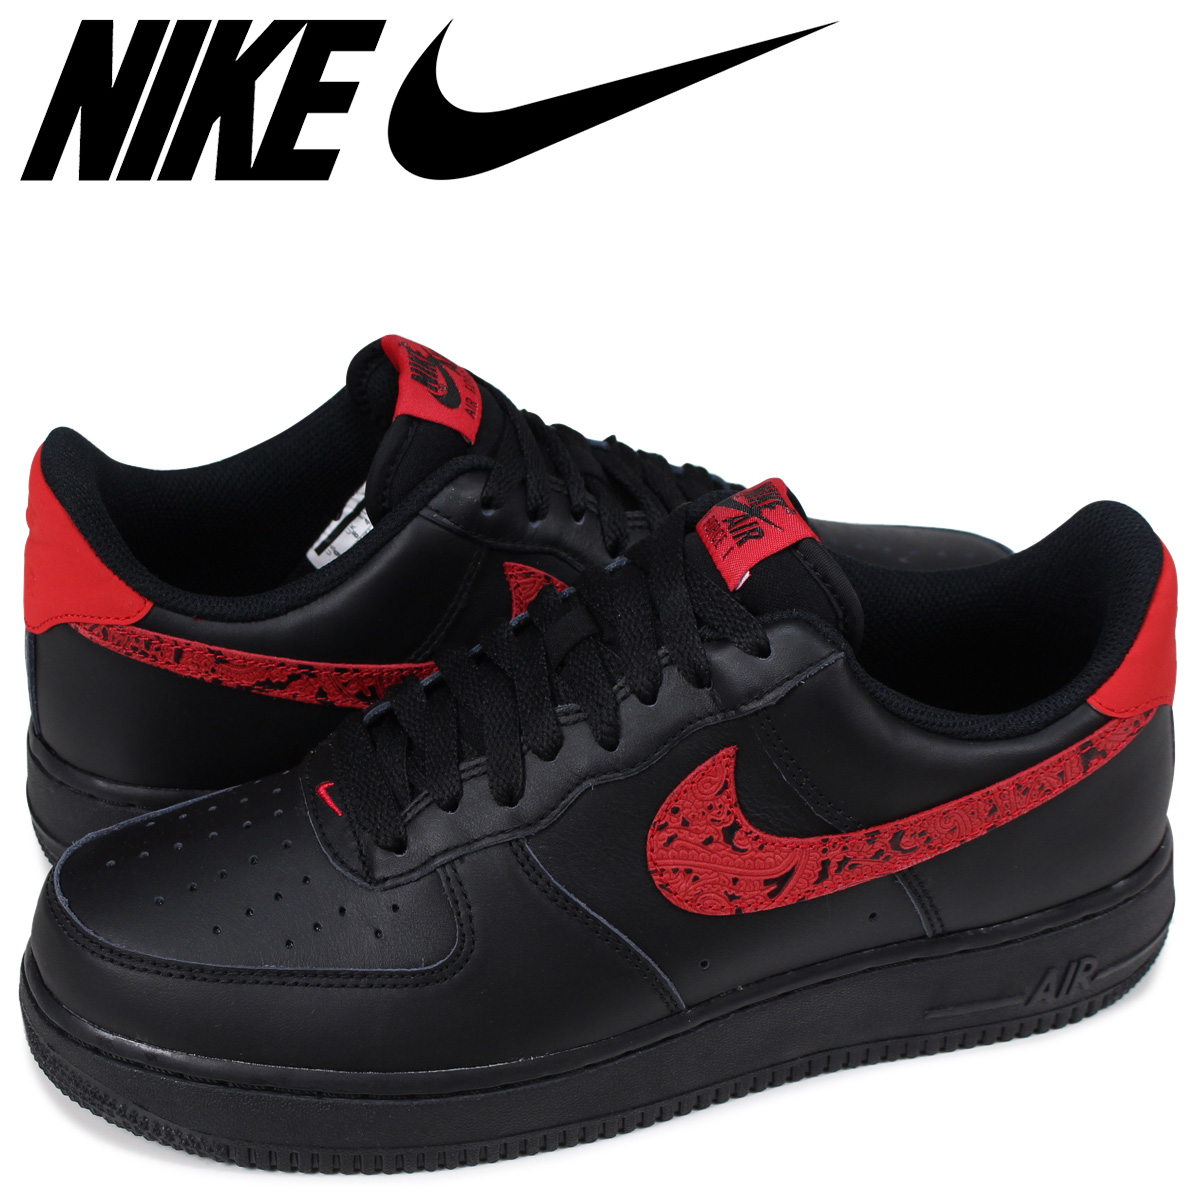 Nike Air Force 1 Low Red Paisley AO3154 001 BlackUniversity